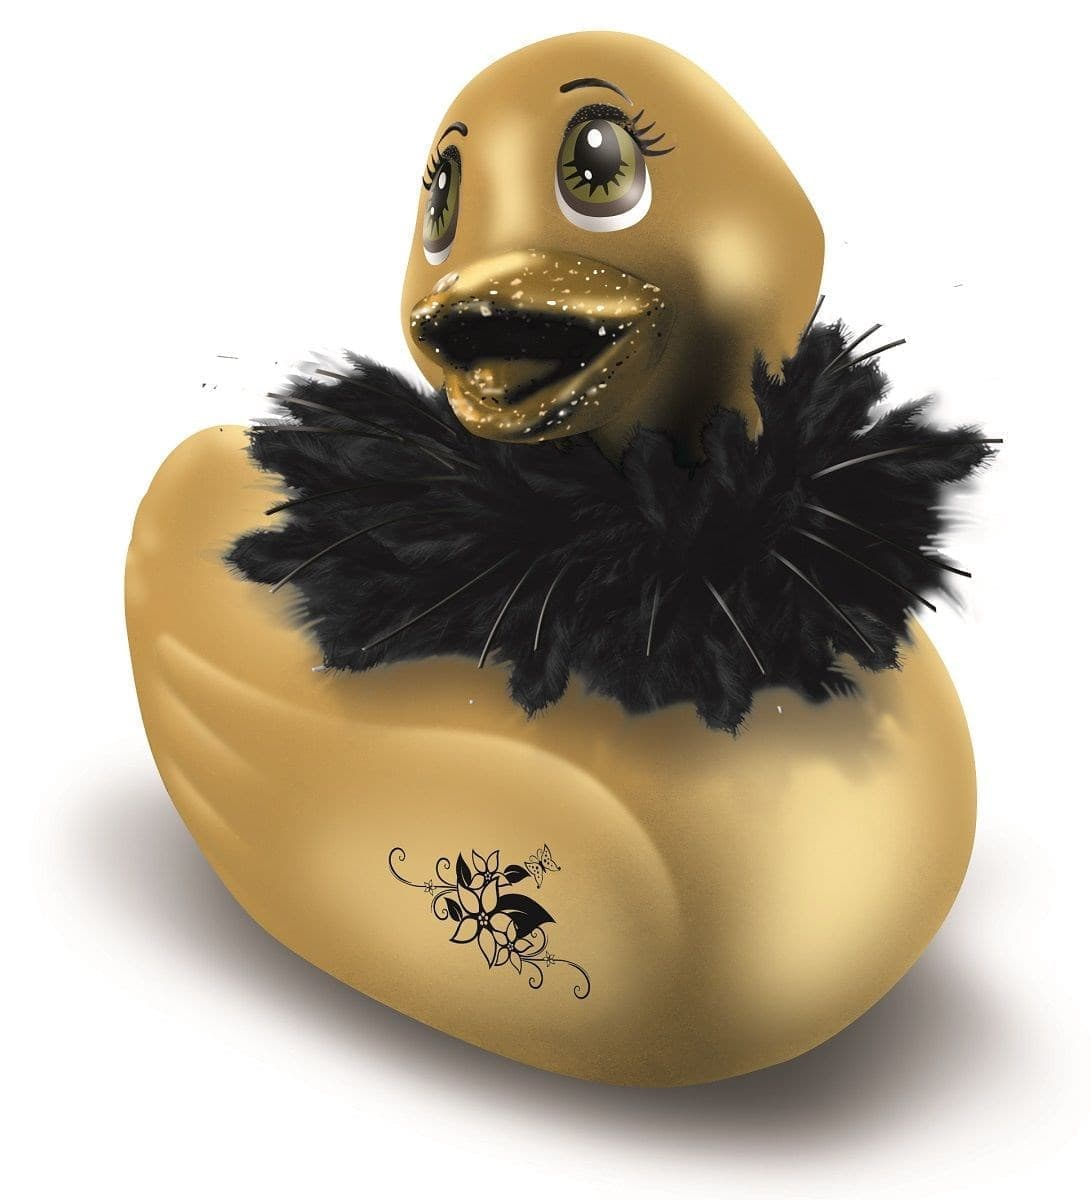 Вибратор-уточка I Rub My Duckie Paris Gold Travel Size - фото 7457